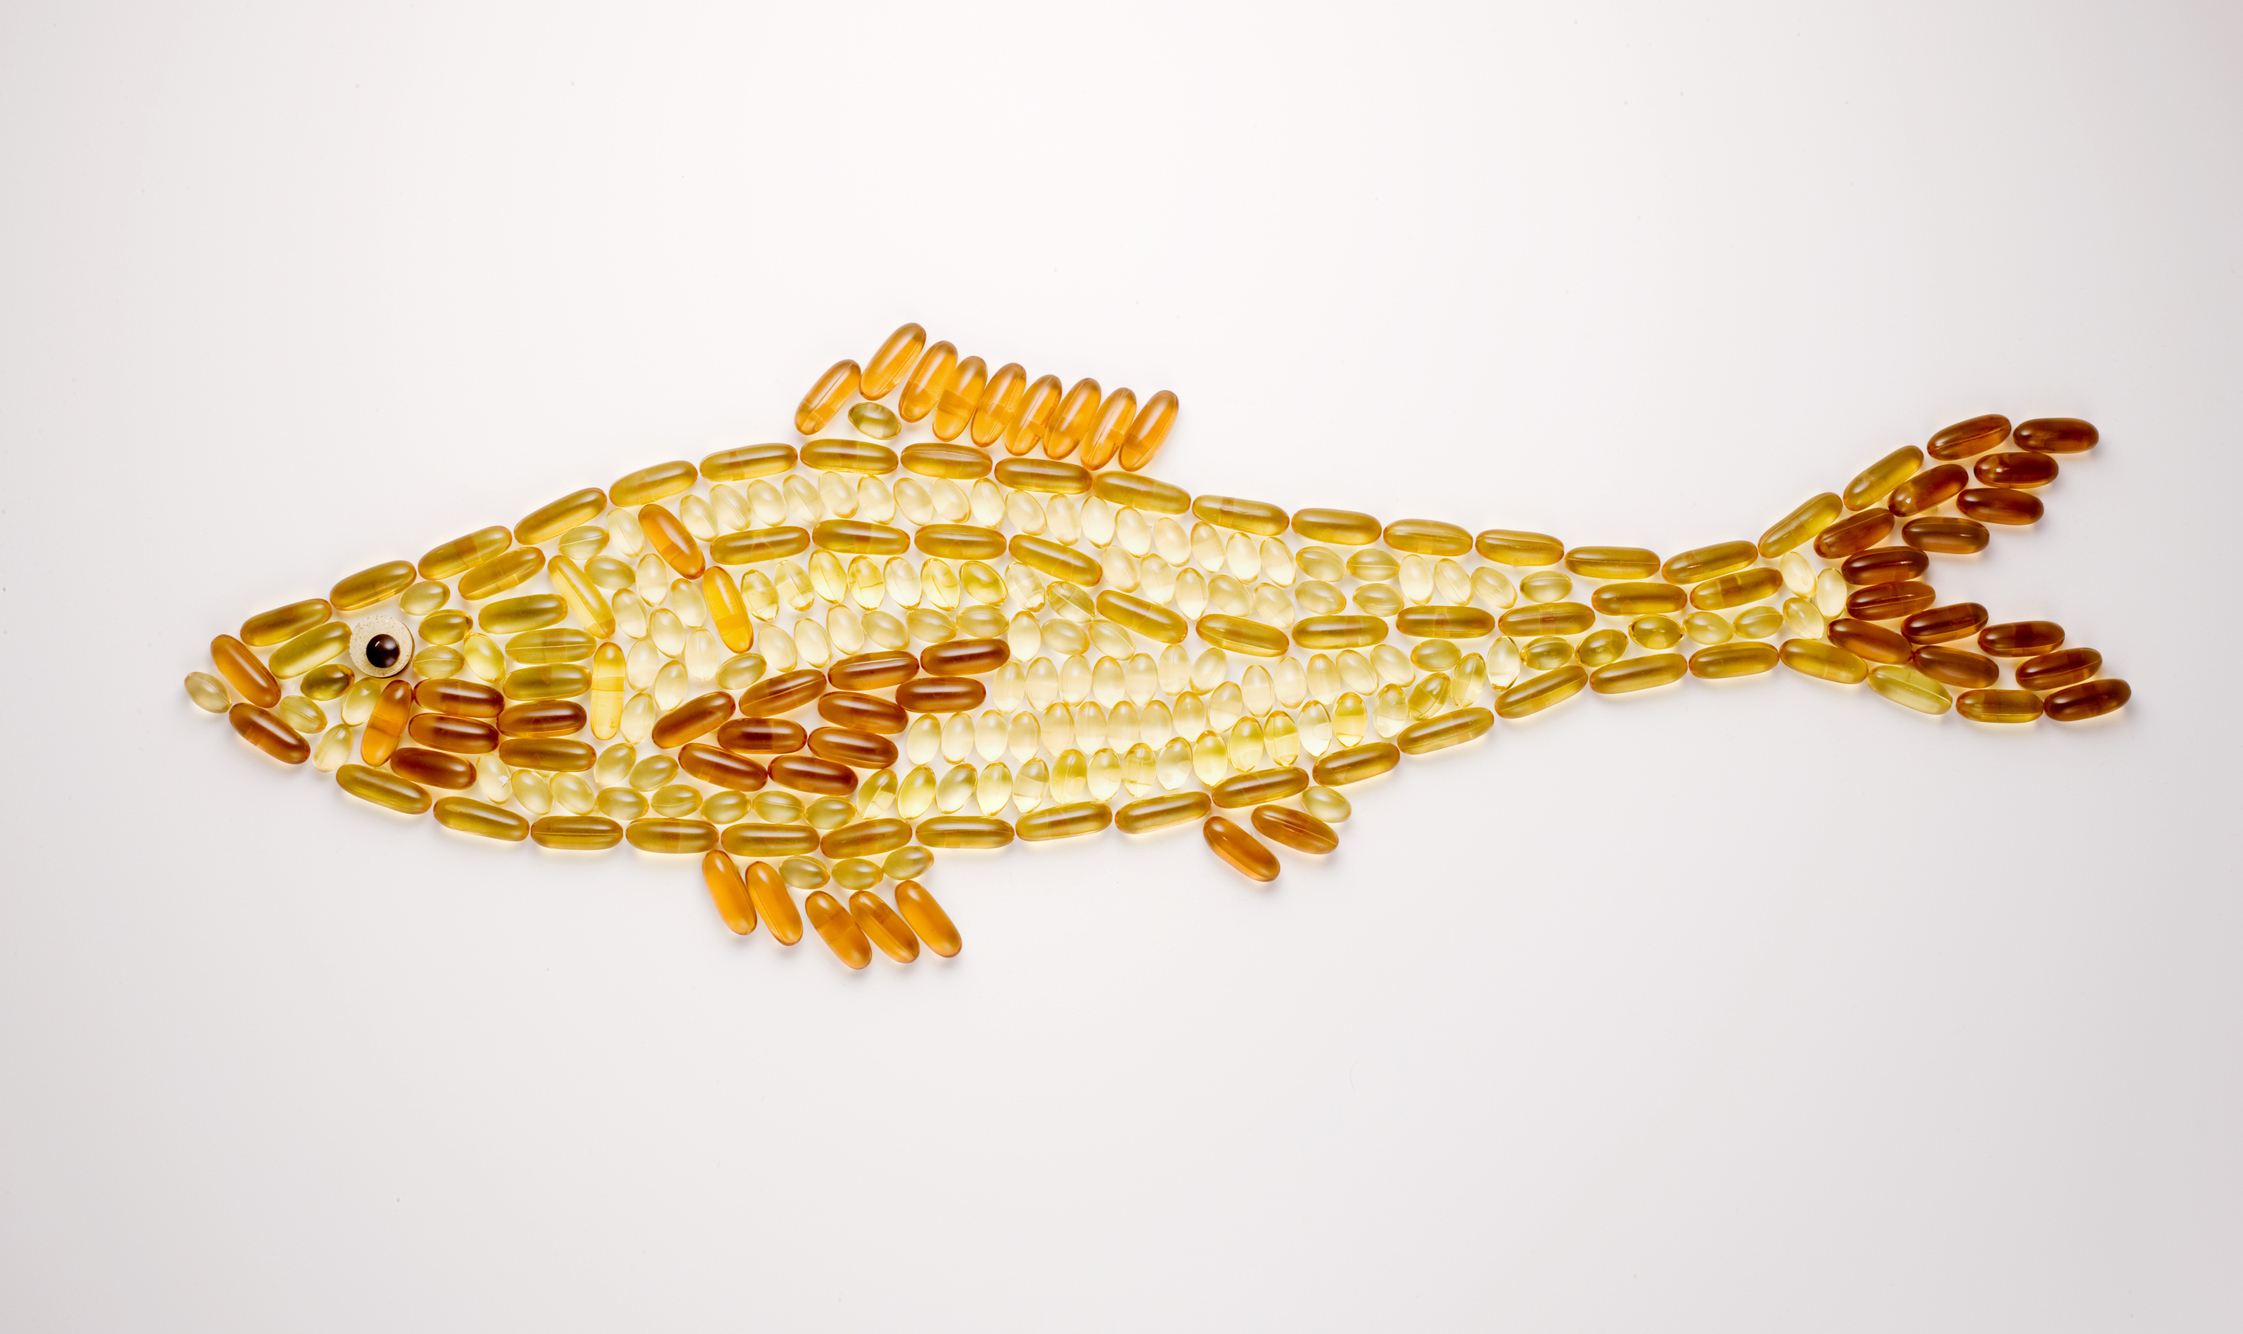 Danish Study Links Fish Oil During Pregnancy With Lower Asthma Risk In Kids